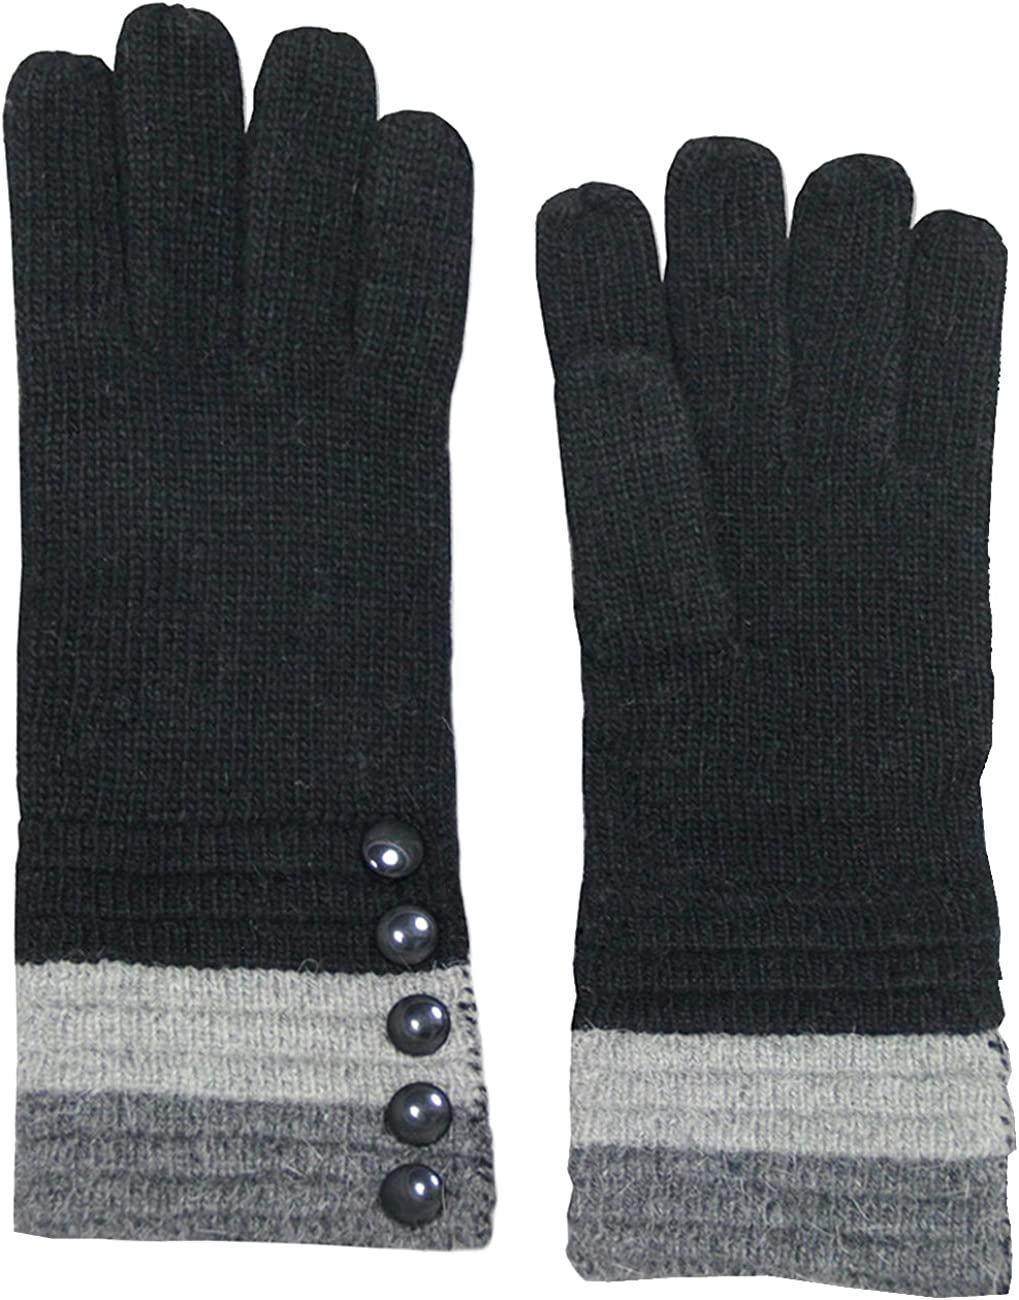 Dahlia Winter Gloves for Women - Wool Knit Cold Weather Gloves, Various Designs